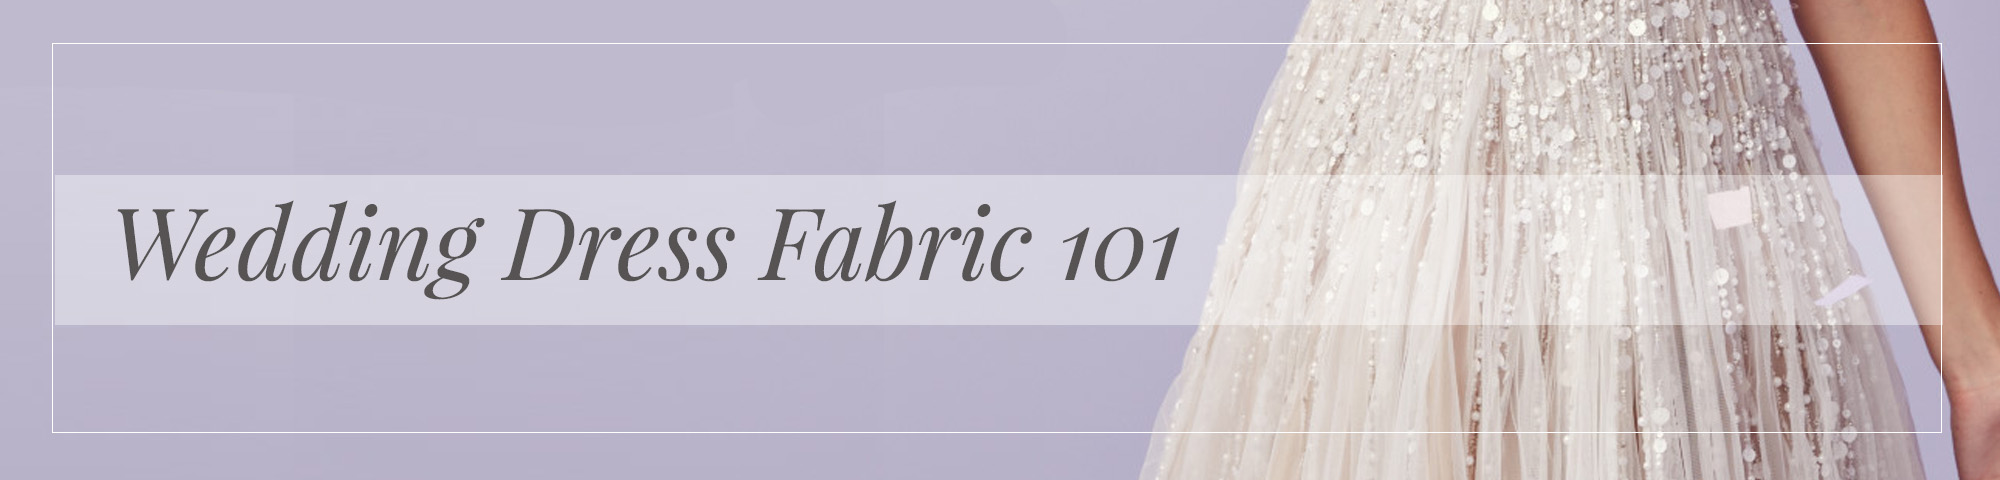 Wedding dress fabric 101 kleinfeld bridal for Wedding dress material guide